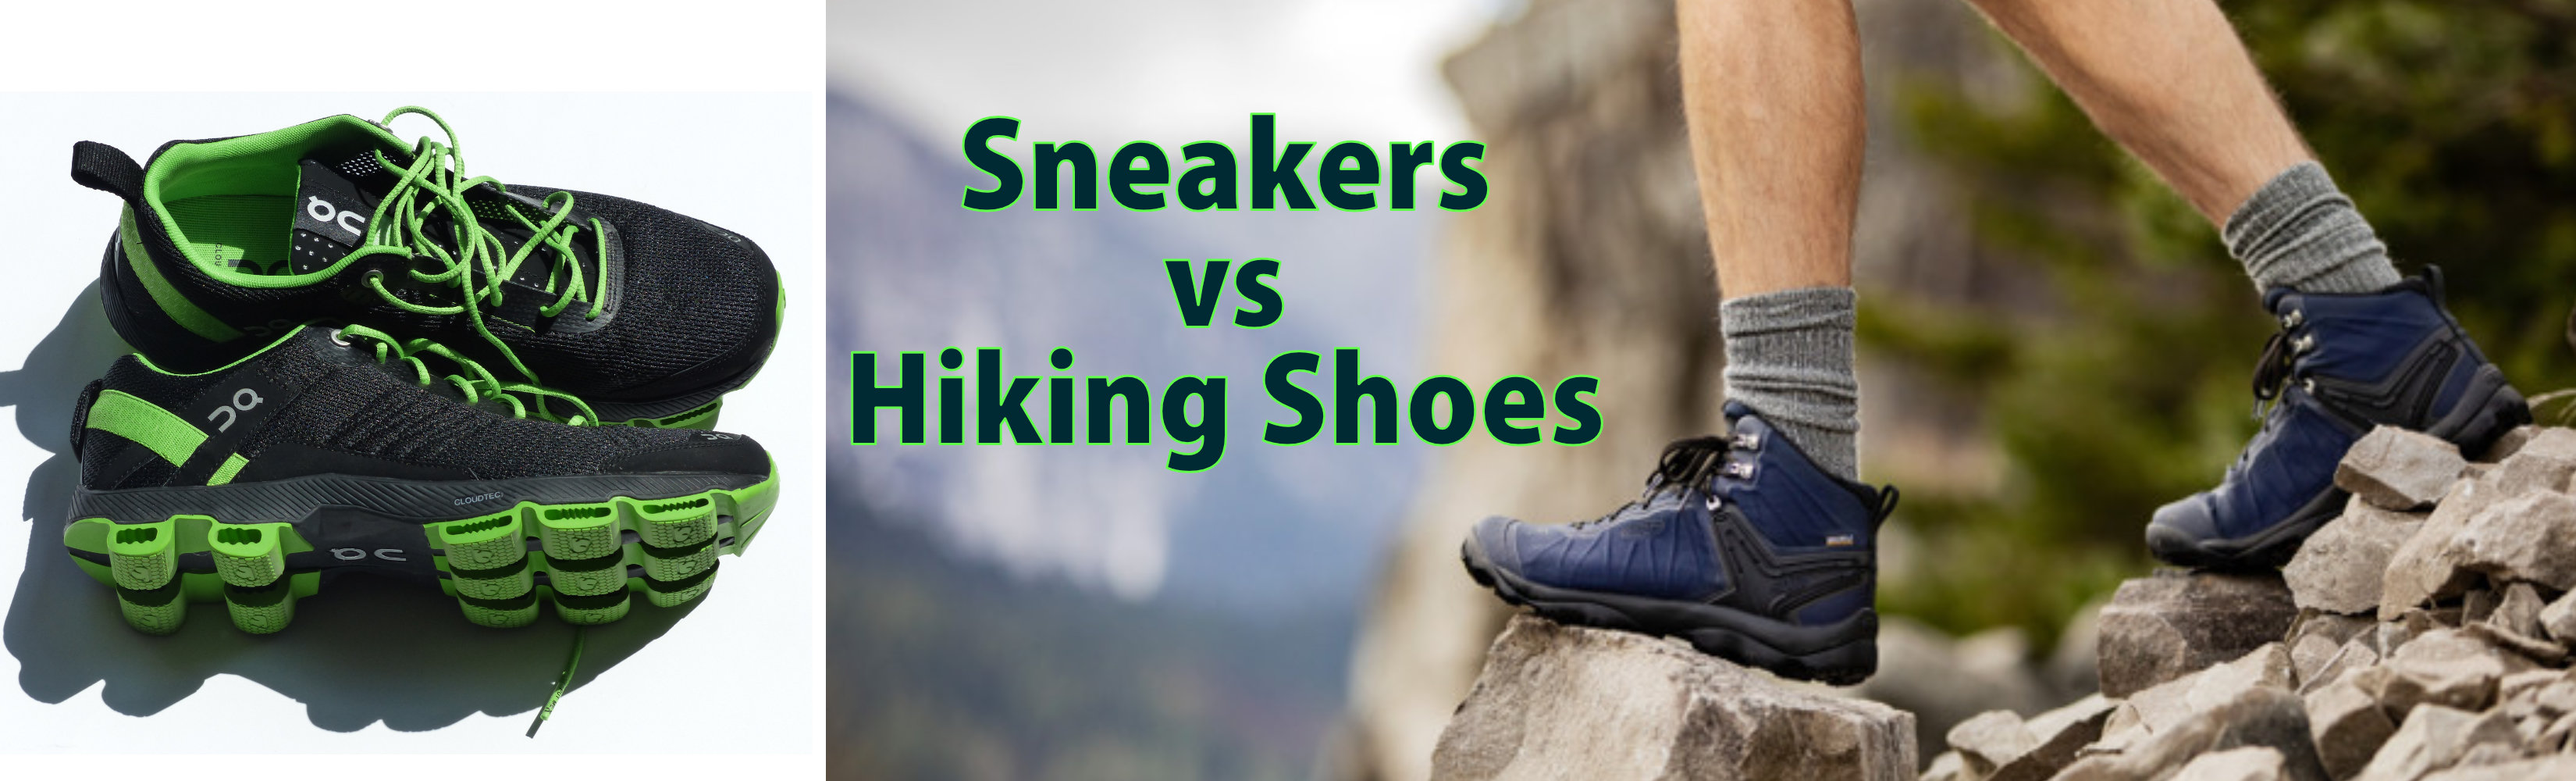 Sneakers Vs Hiking Shoes